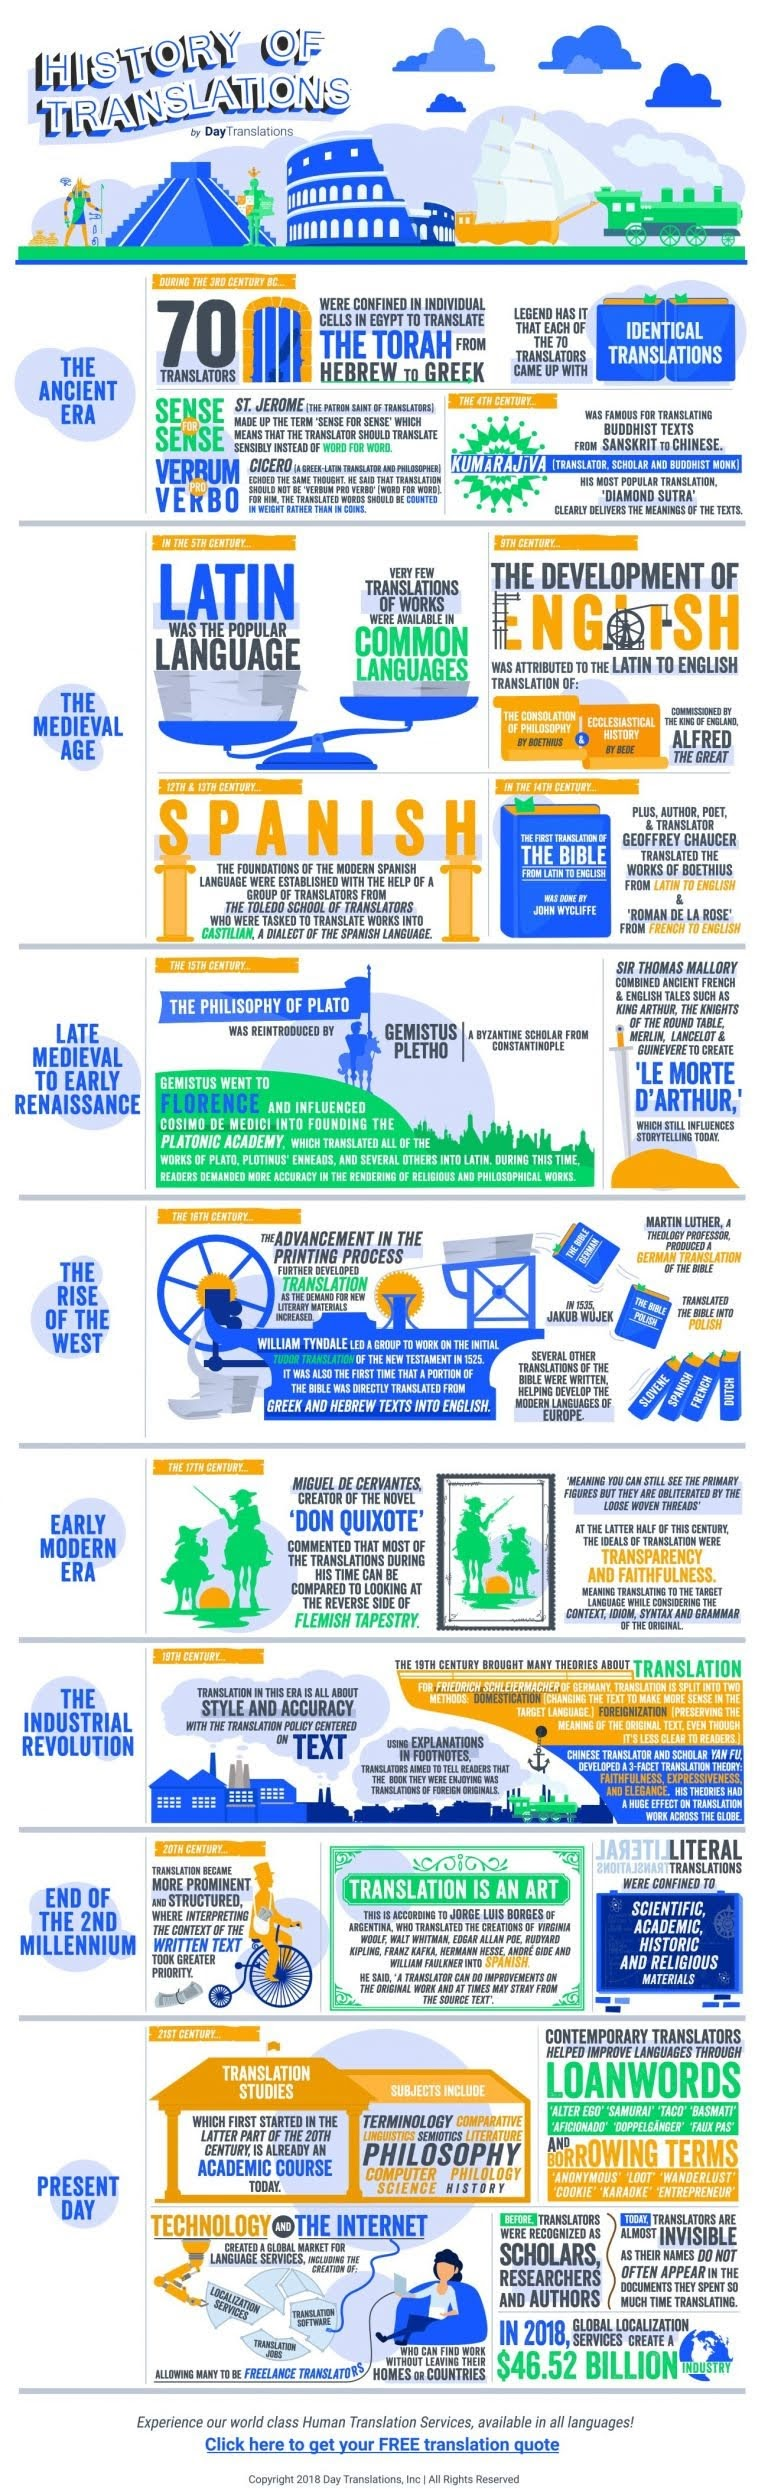 The History of Translations (Past, Present and Future) #infographic